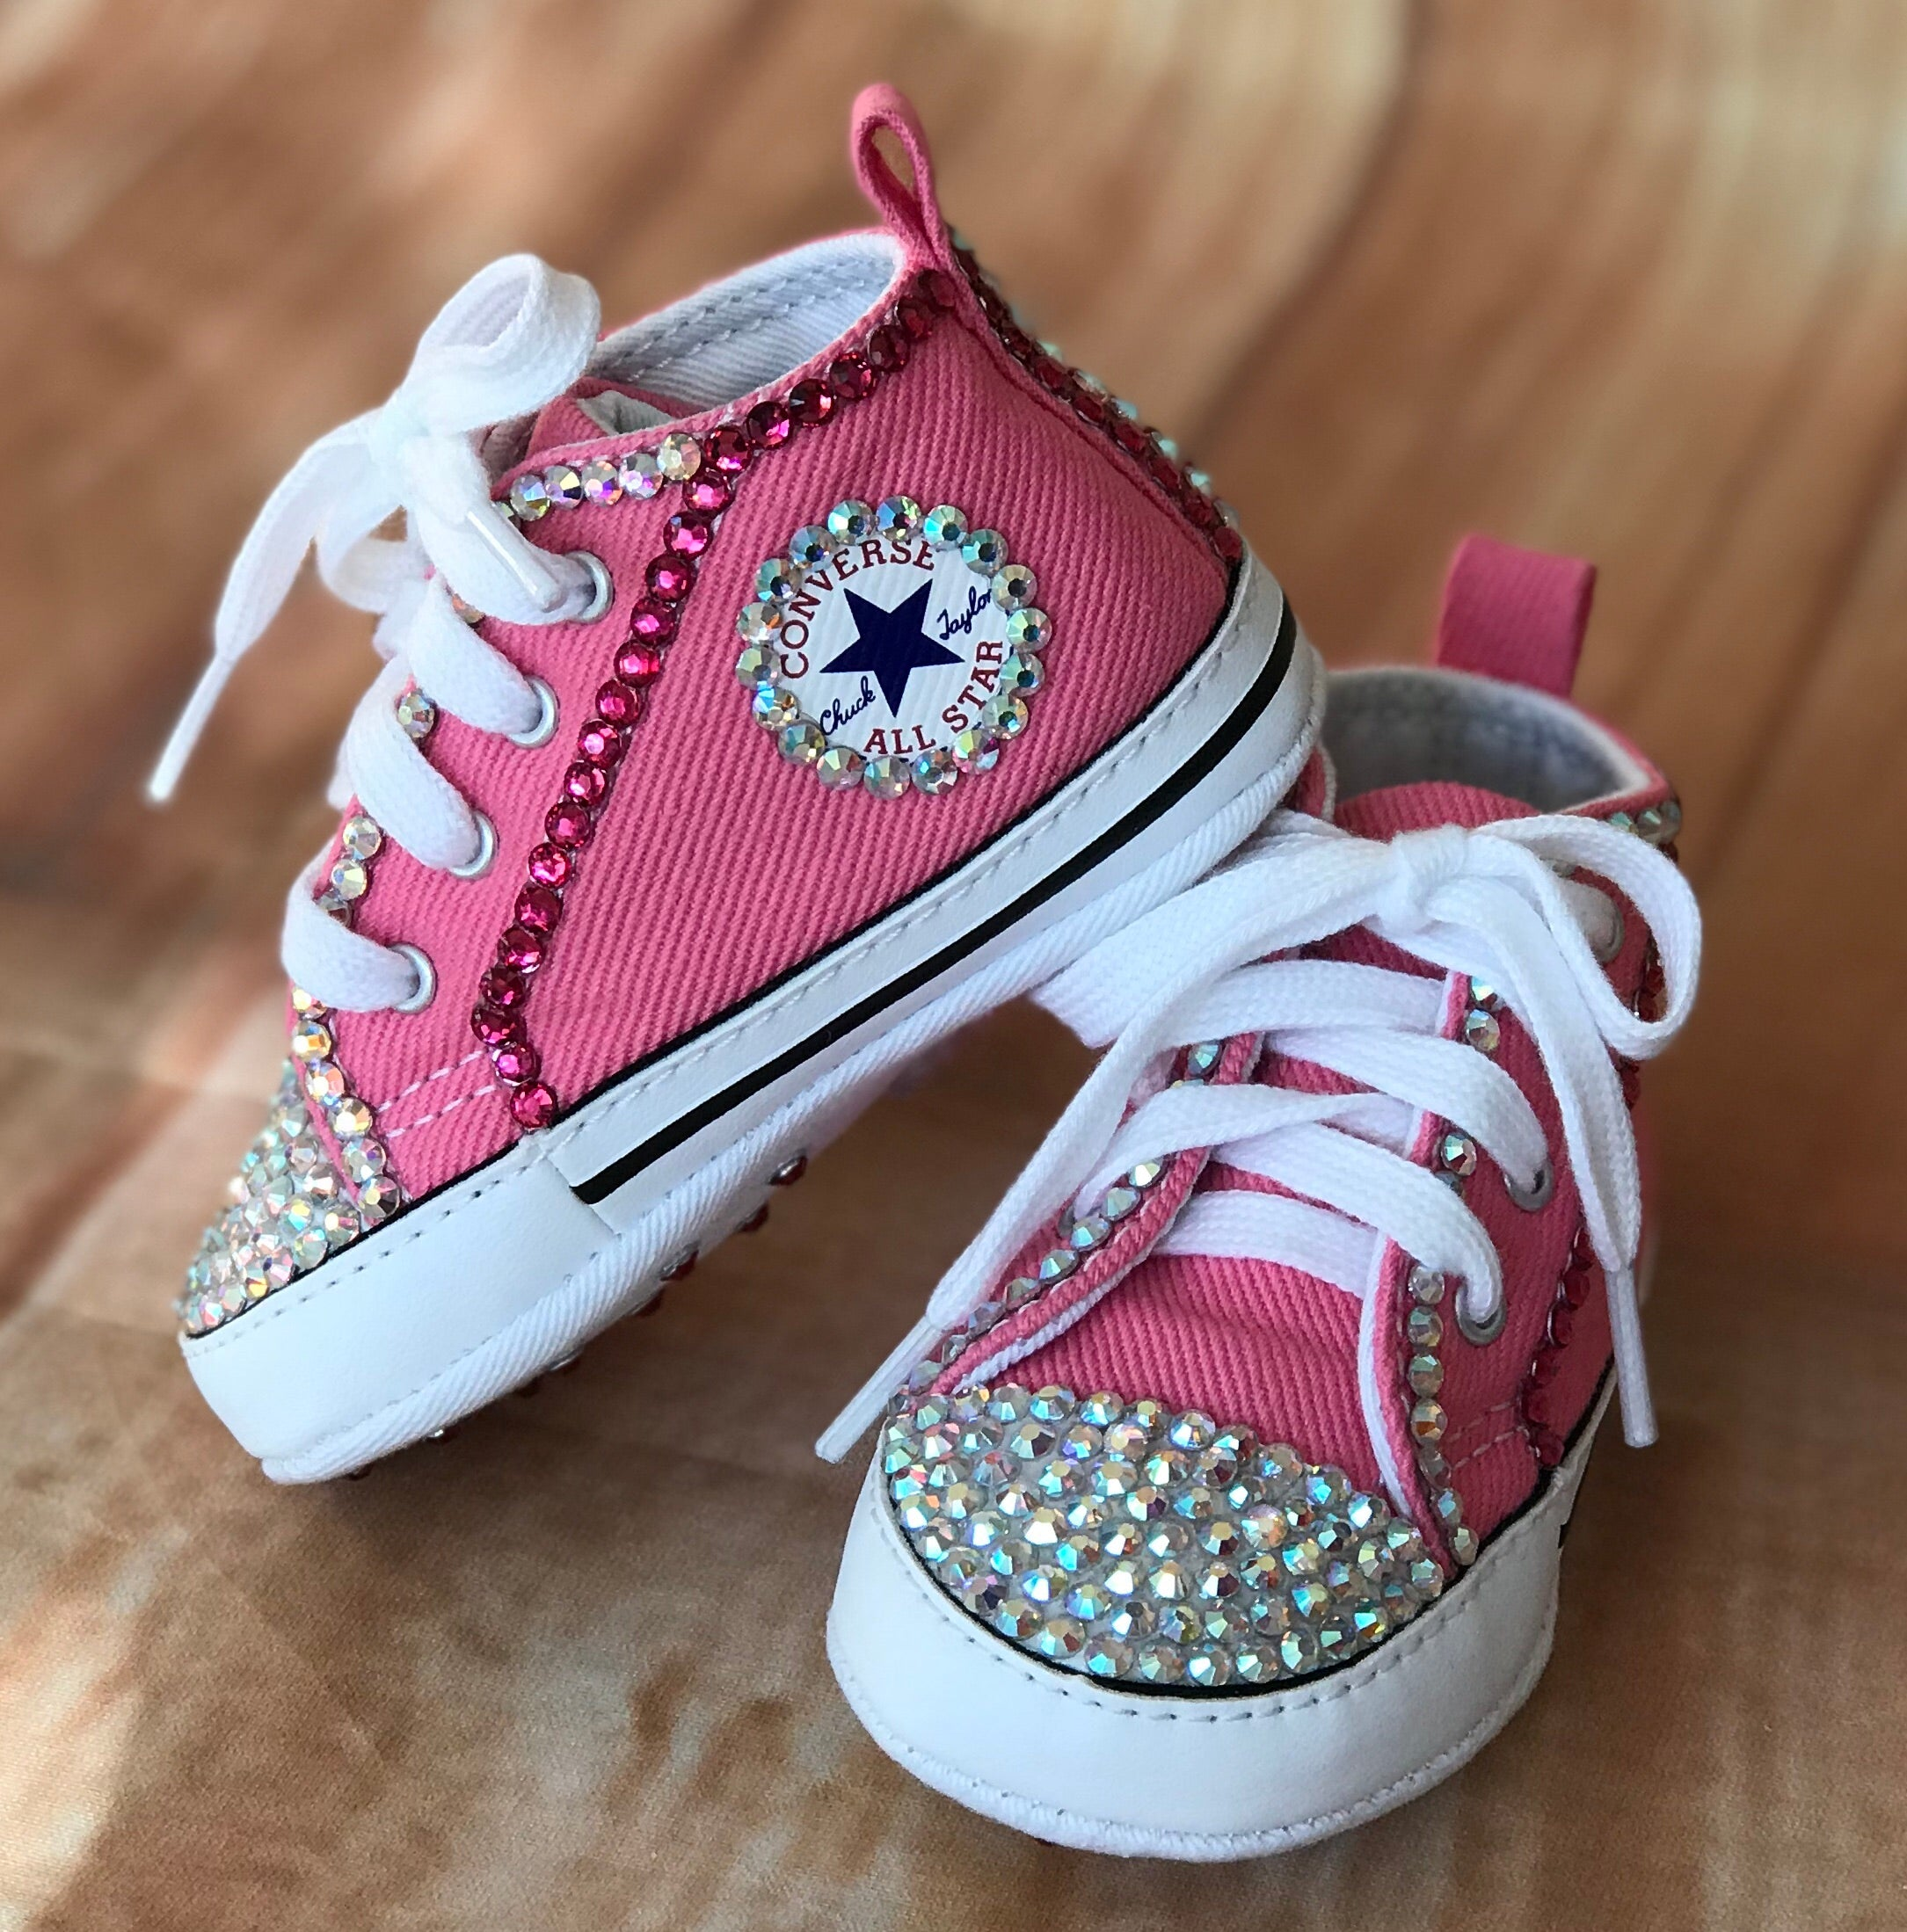 0d77bb608a56 Blinged Pink Baby Converse Sneakers